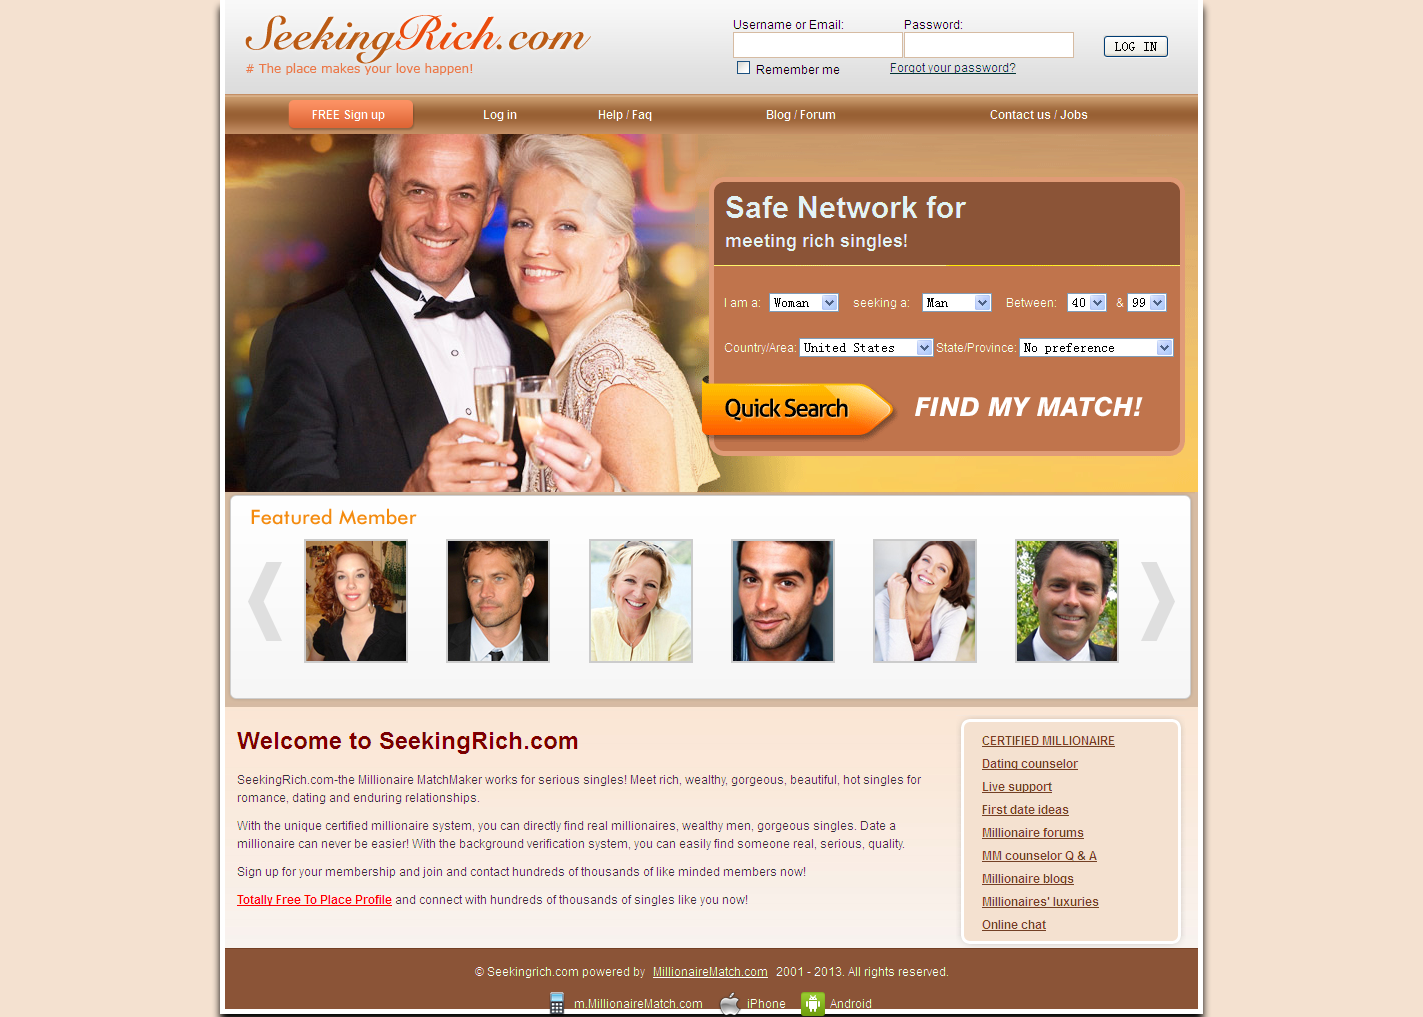 hawthorne singles dating site Personal ads for hawthorne, nj are a great way to find a life partner, movie date, or a quick hookup personals are for people local to hawthorne, nj and are for ages 18+ of.